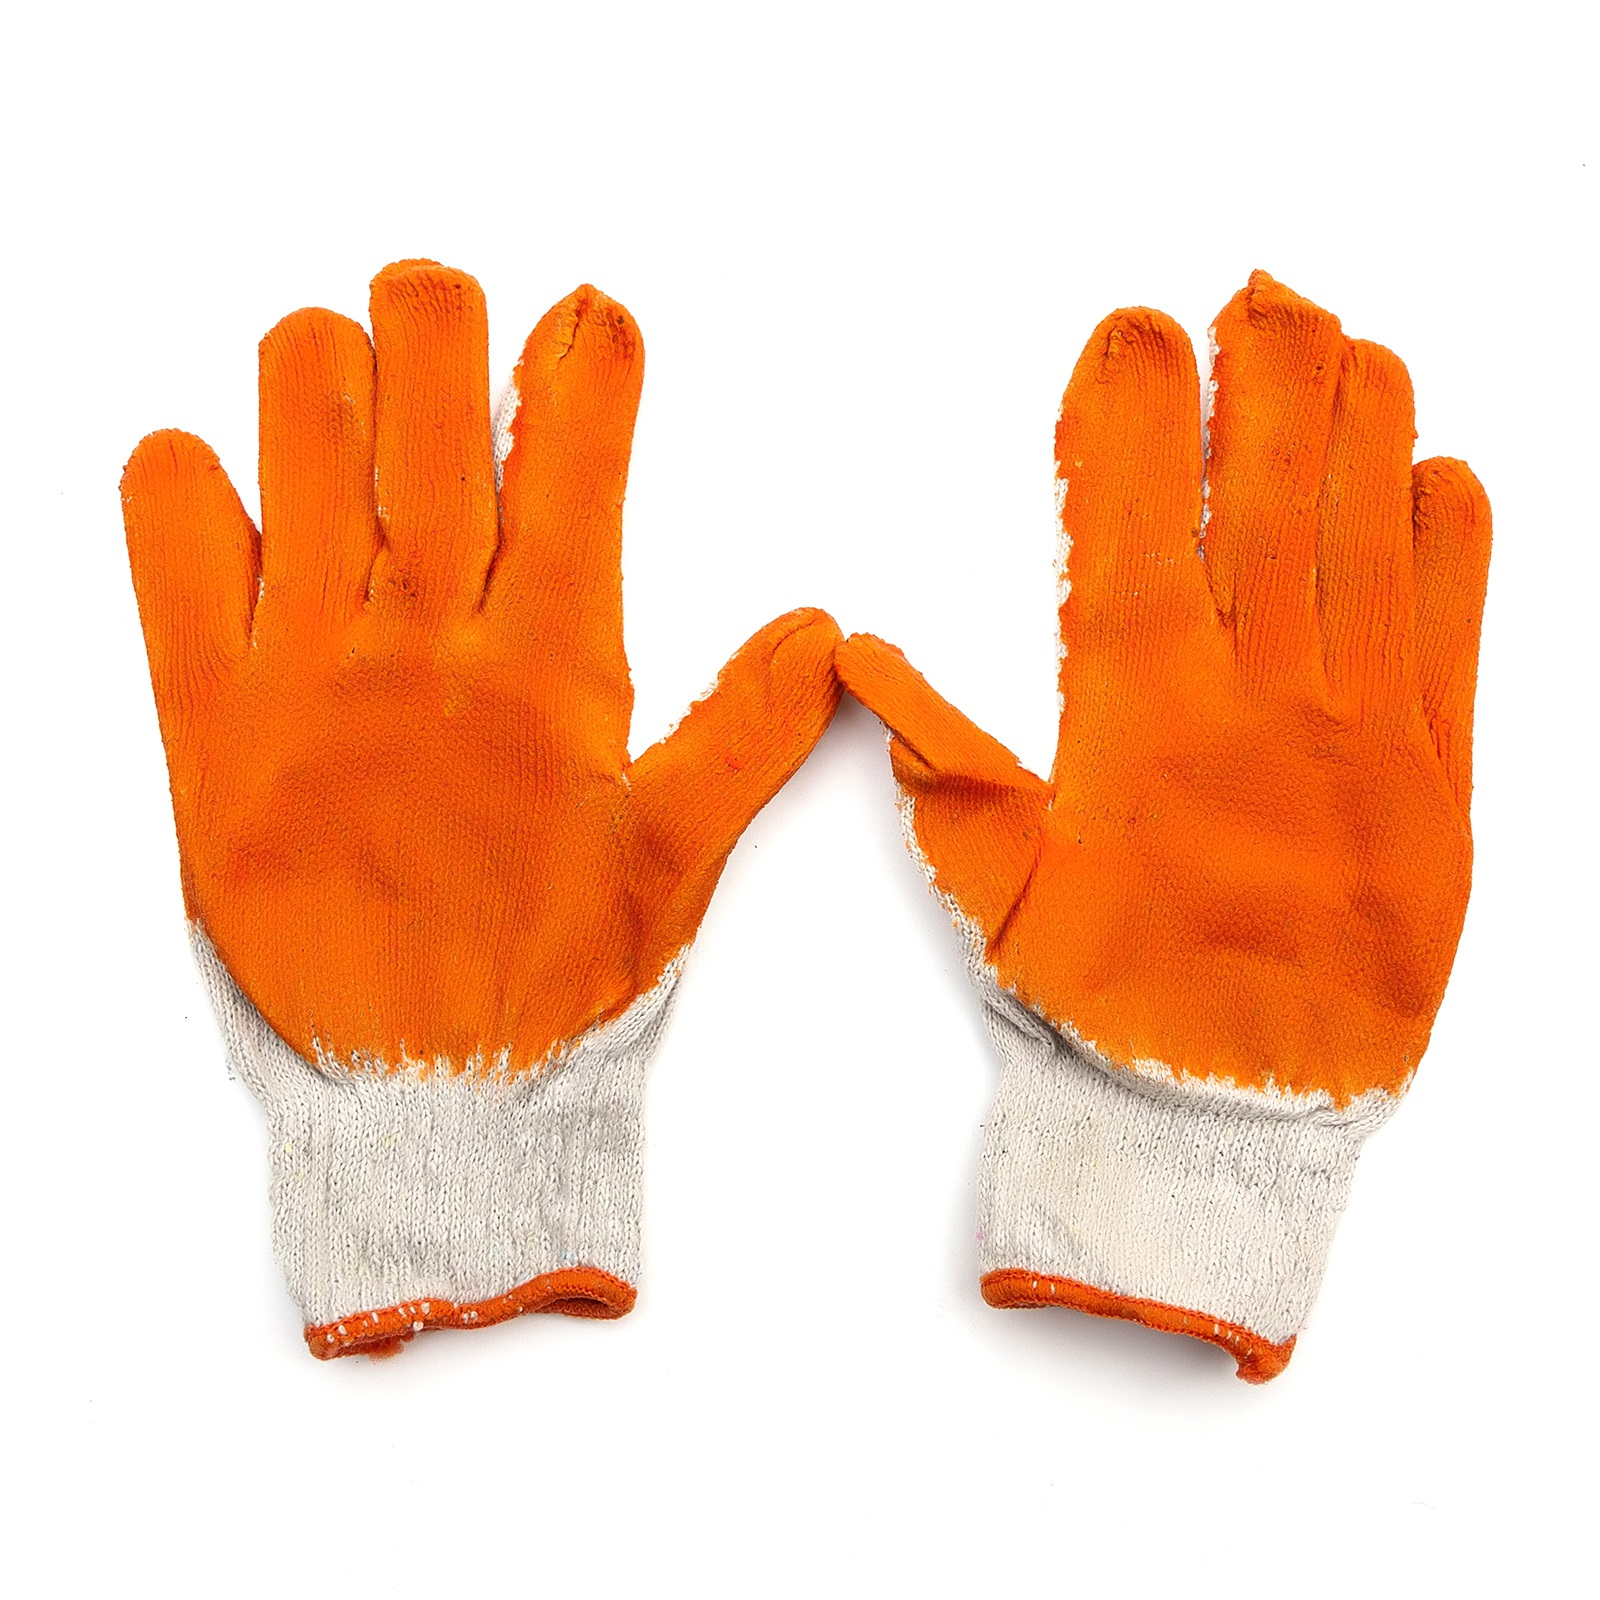 Pack of 10 Loose Fit Cotton Breathable Non Slip Gardening Gloves Orange Adult